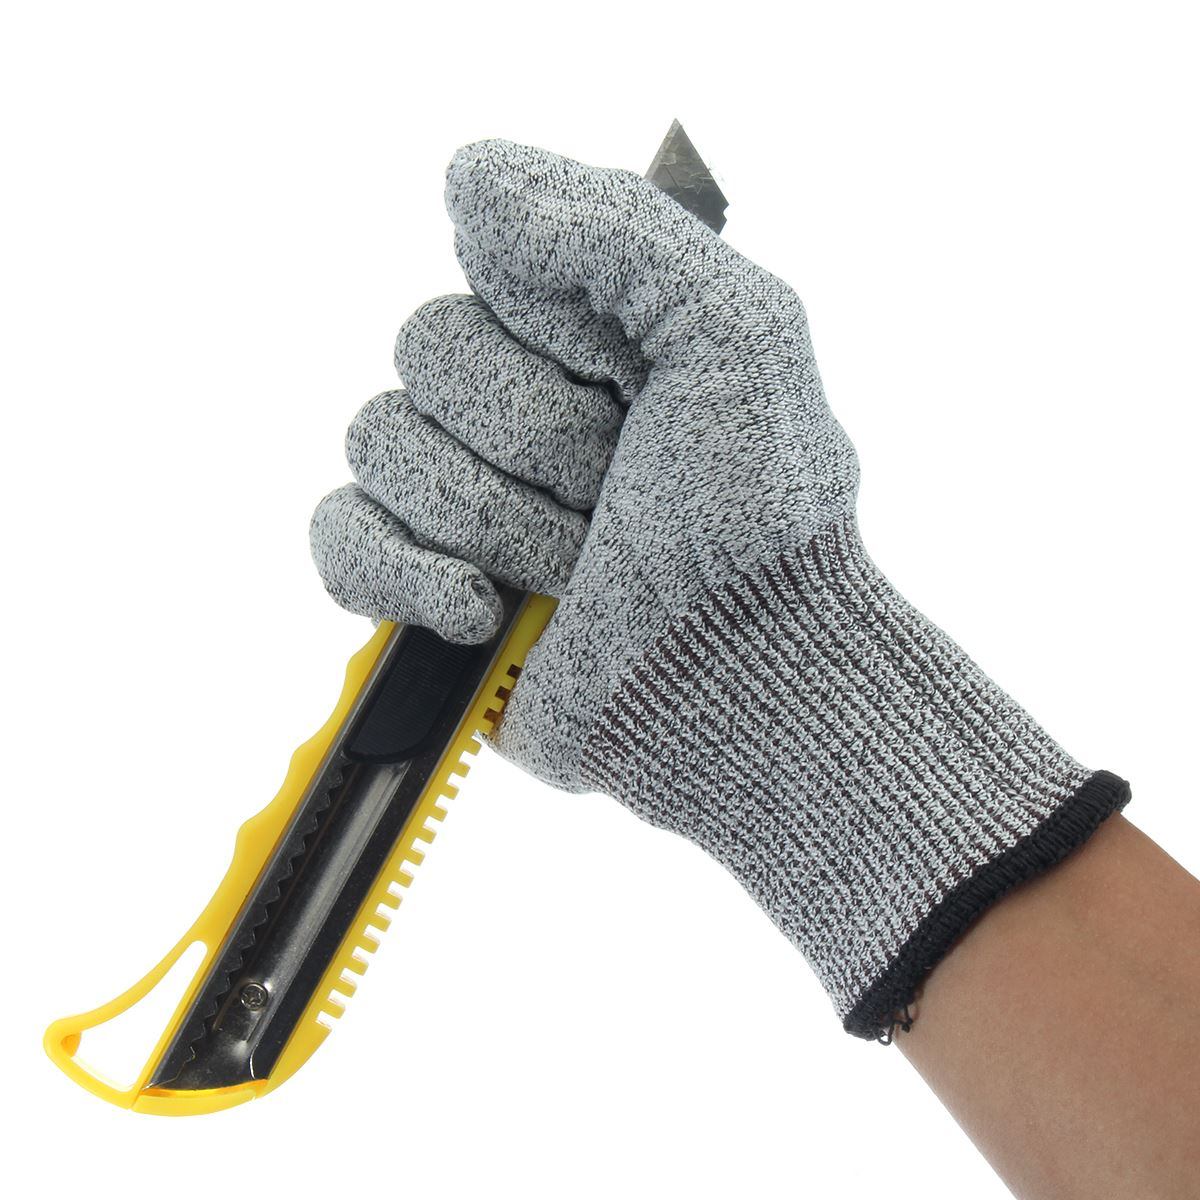 Safety Cut Proof Stab Resistant Stainless Steel Wire Metal Mesh Butcher Gloves Cut-Resistant Safety Gloves top quality 304l stainless steel mesh knife cut resistant chain mail protective glove for kitchen butcher working safety